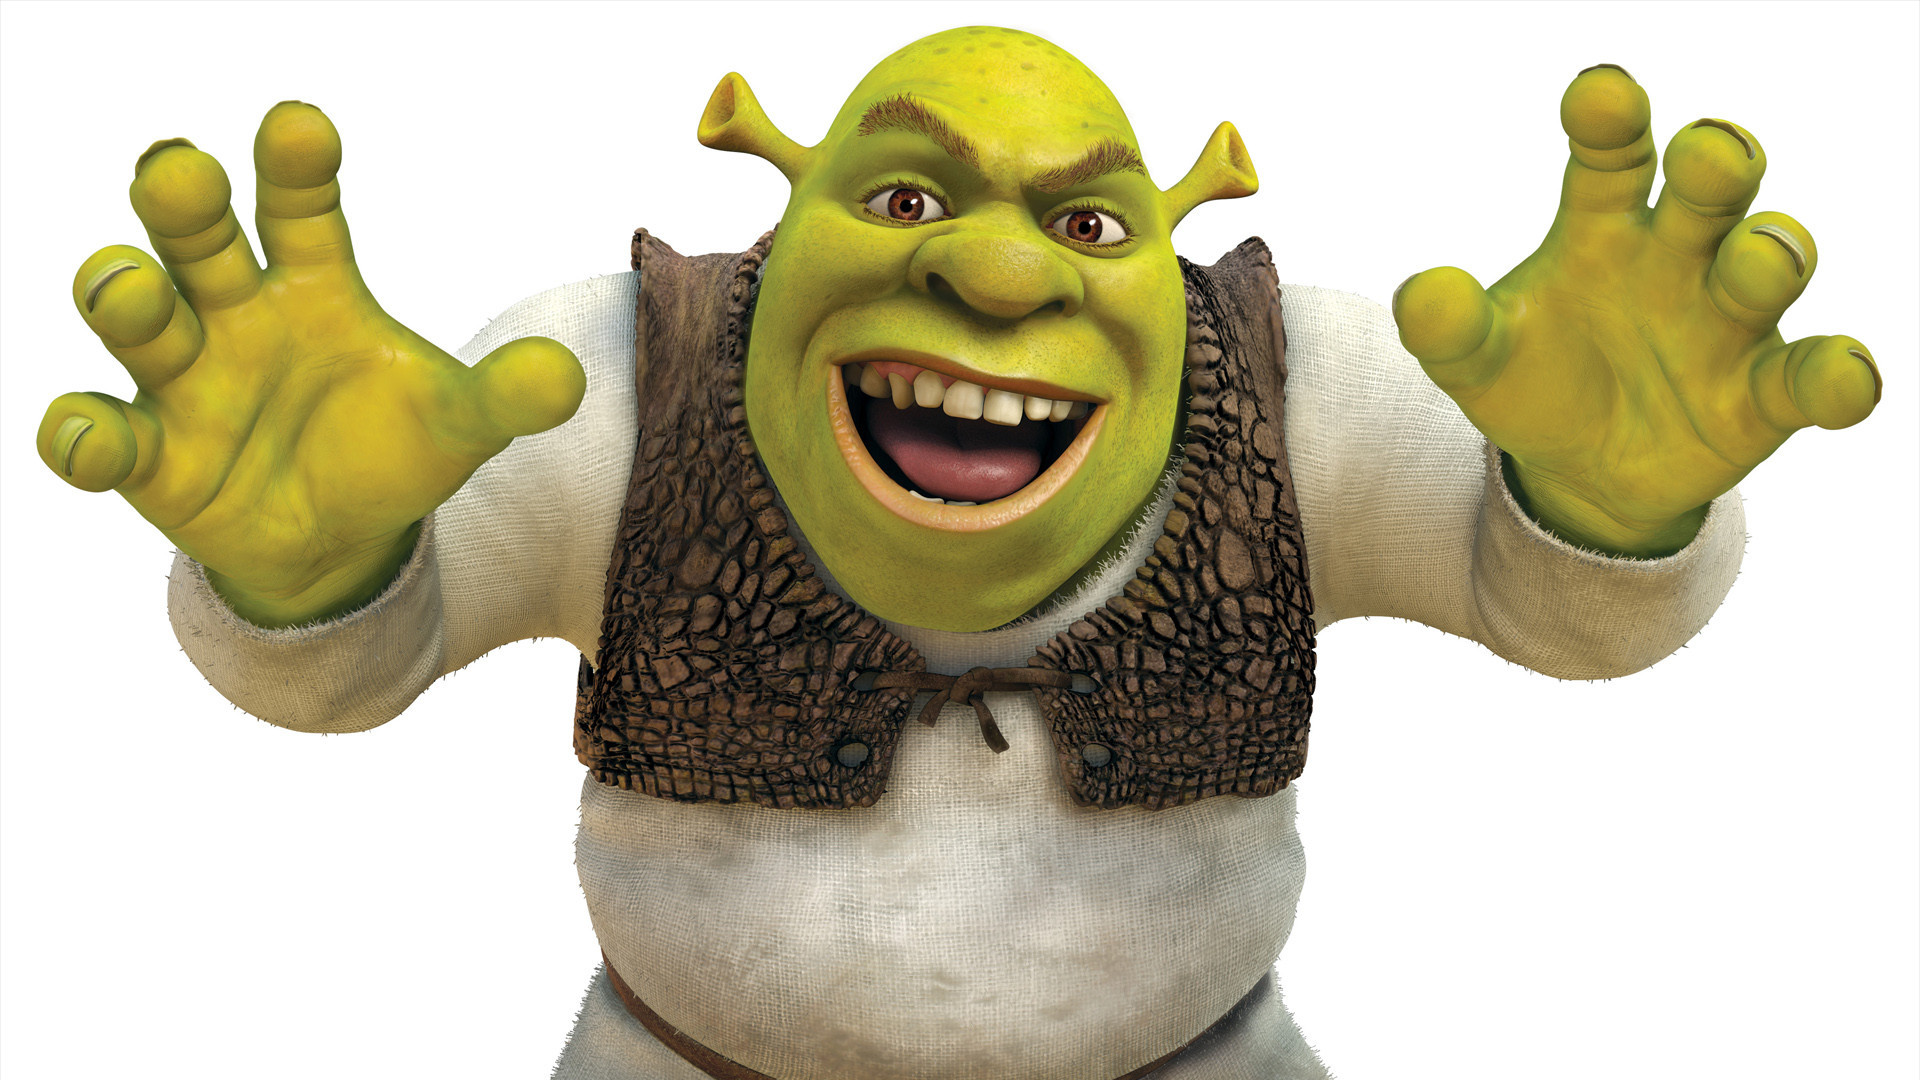 A New Shrek May Happen Rotoscopers